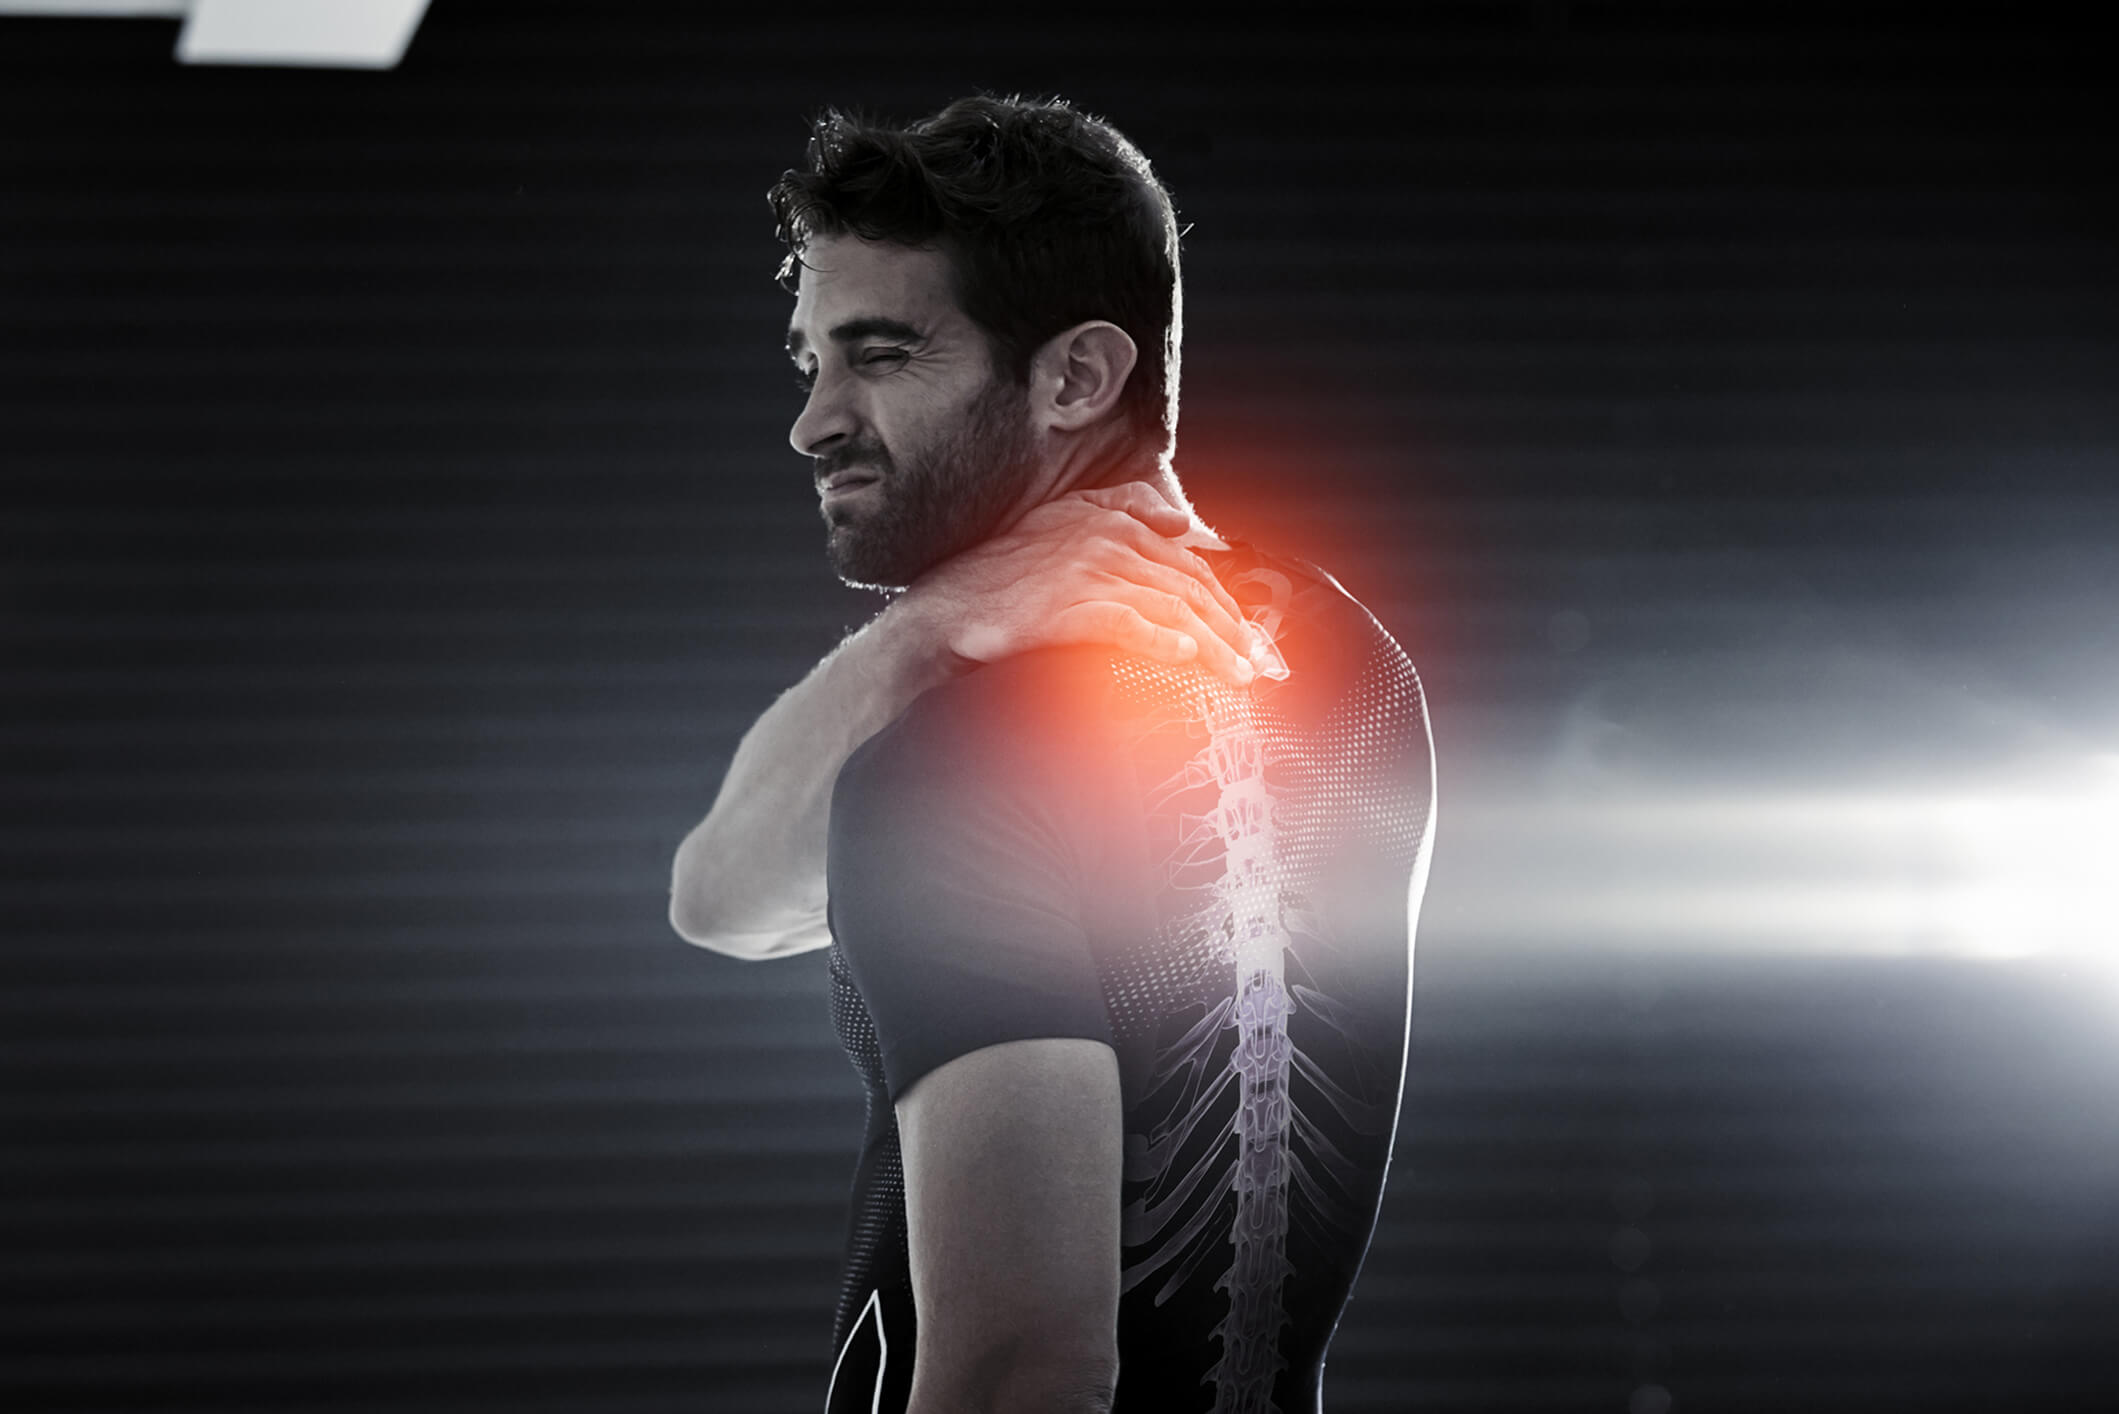 Southern Regional Pain Services - pain management near me - pain management doctor Little Rock, AR - pain management physician Little Rock, AR - chronic pain treatment near me - neck pain treatment near me - back pain treatment near me